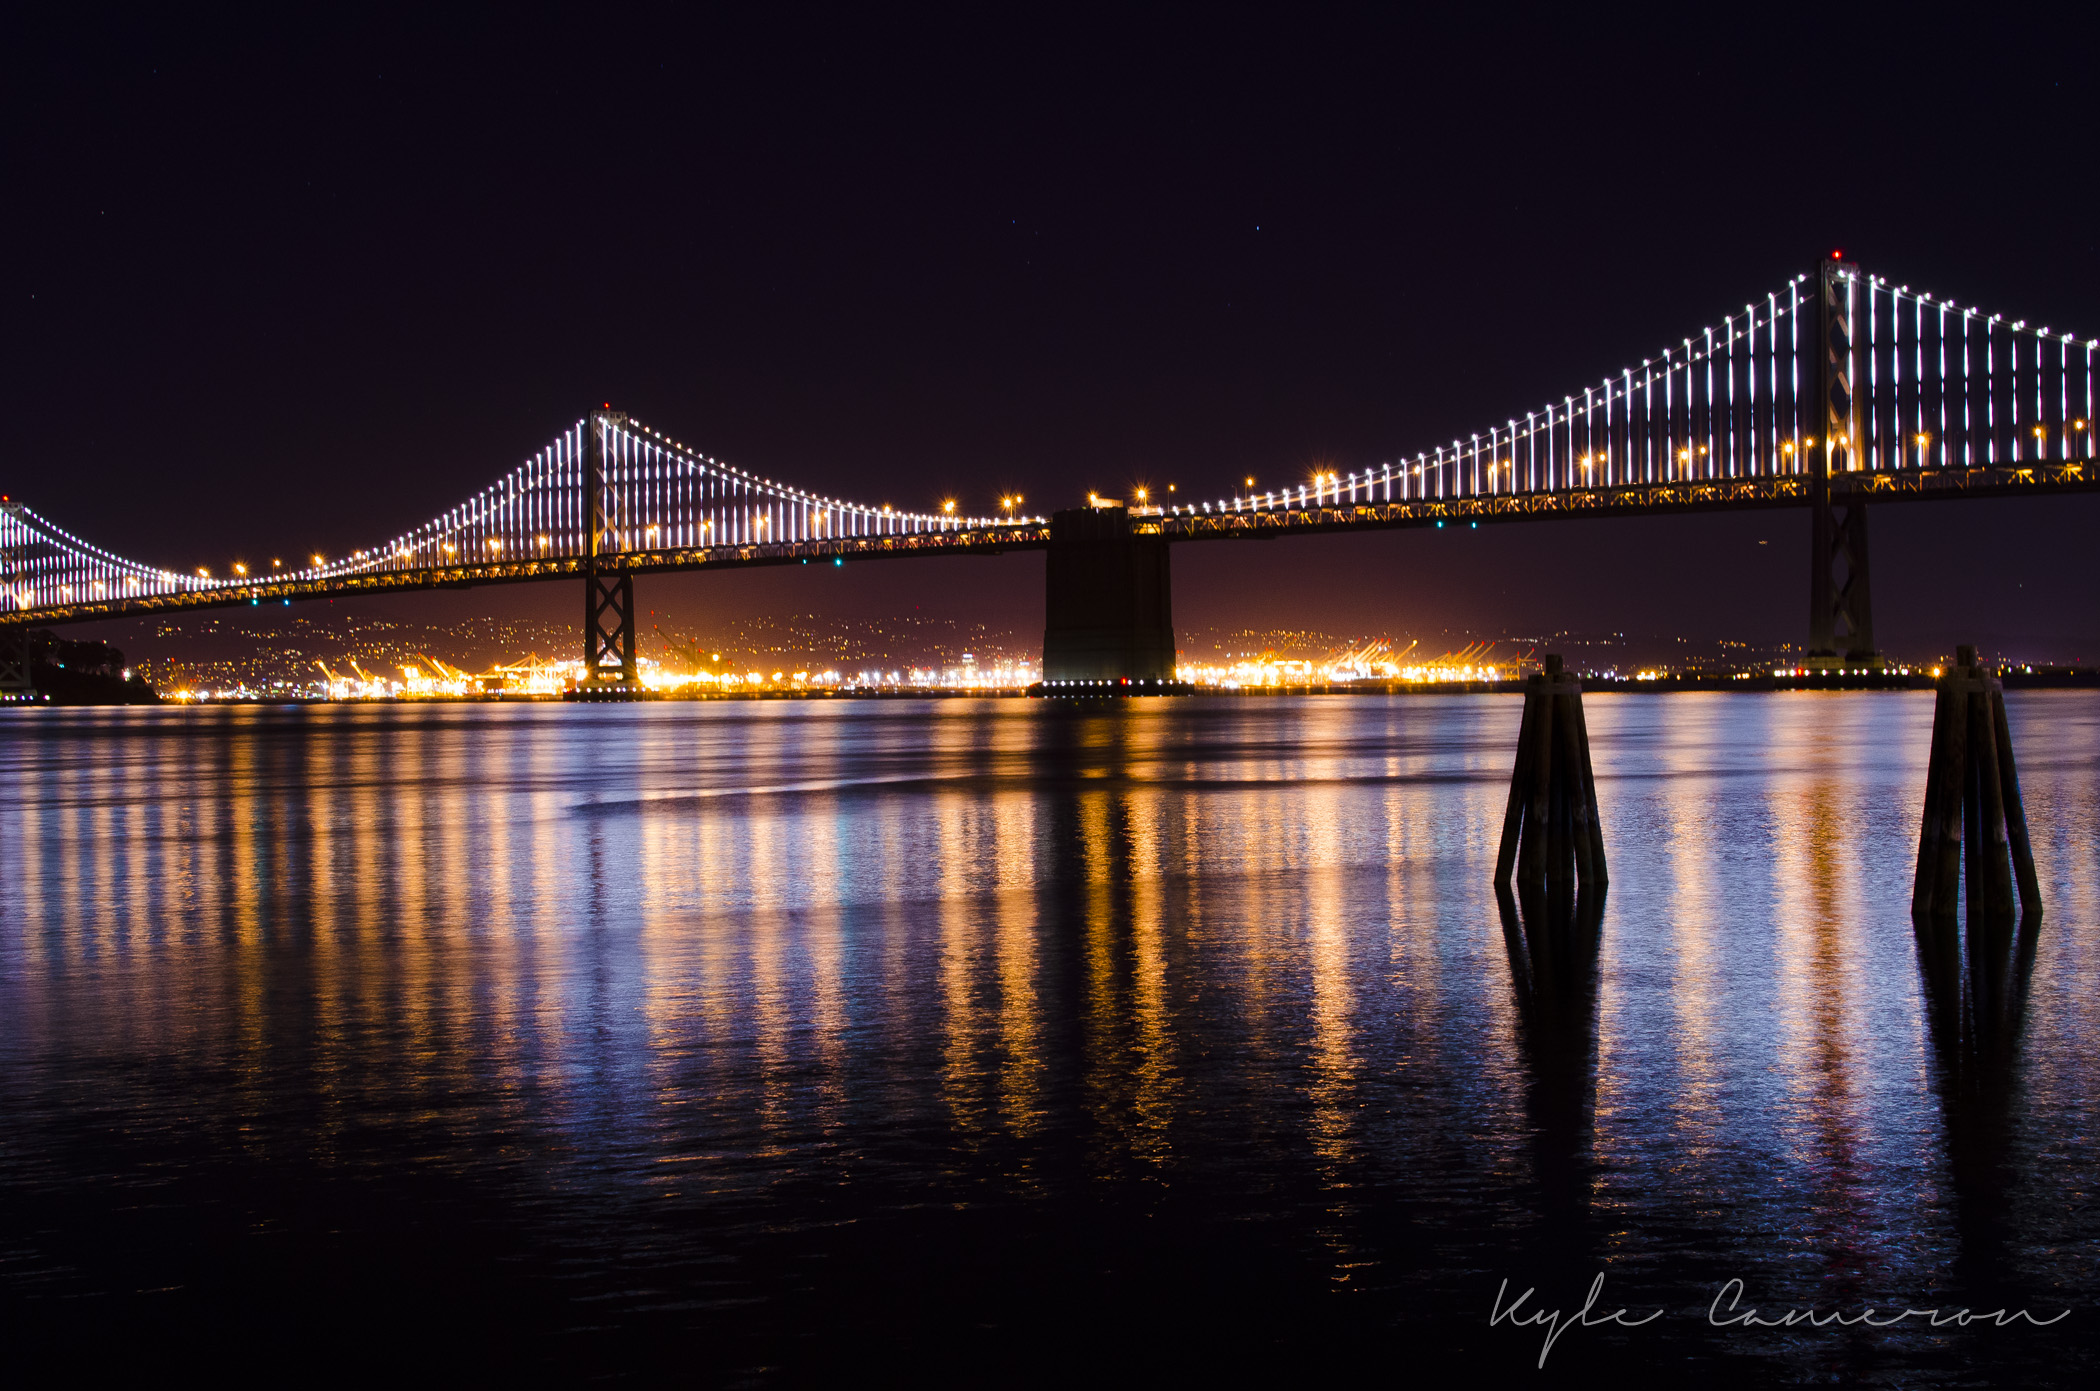 Bay Bridge II 11-05-2013.jpg